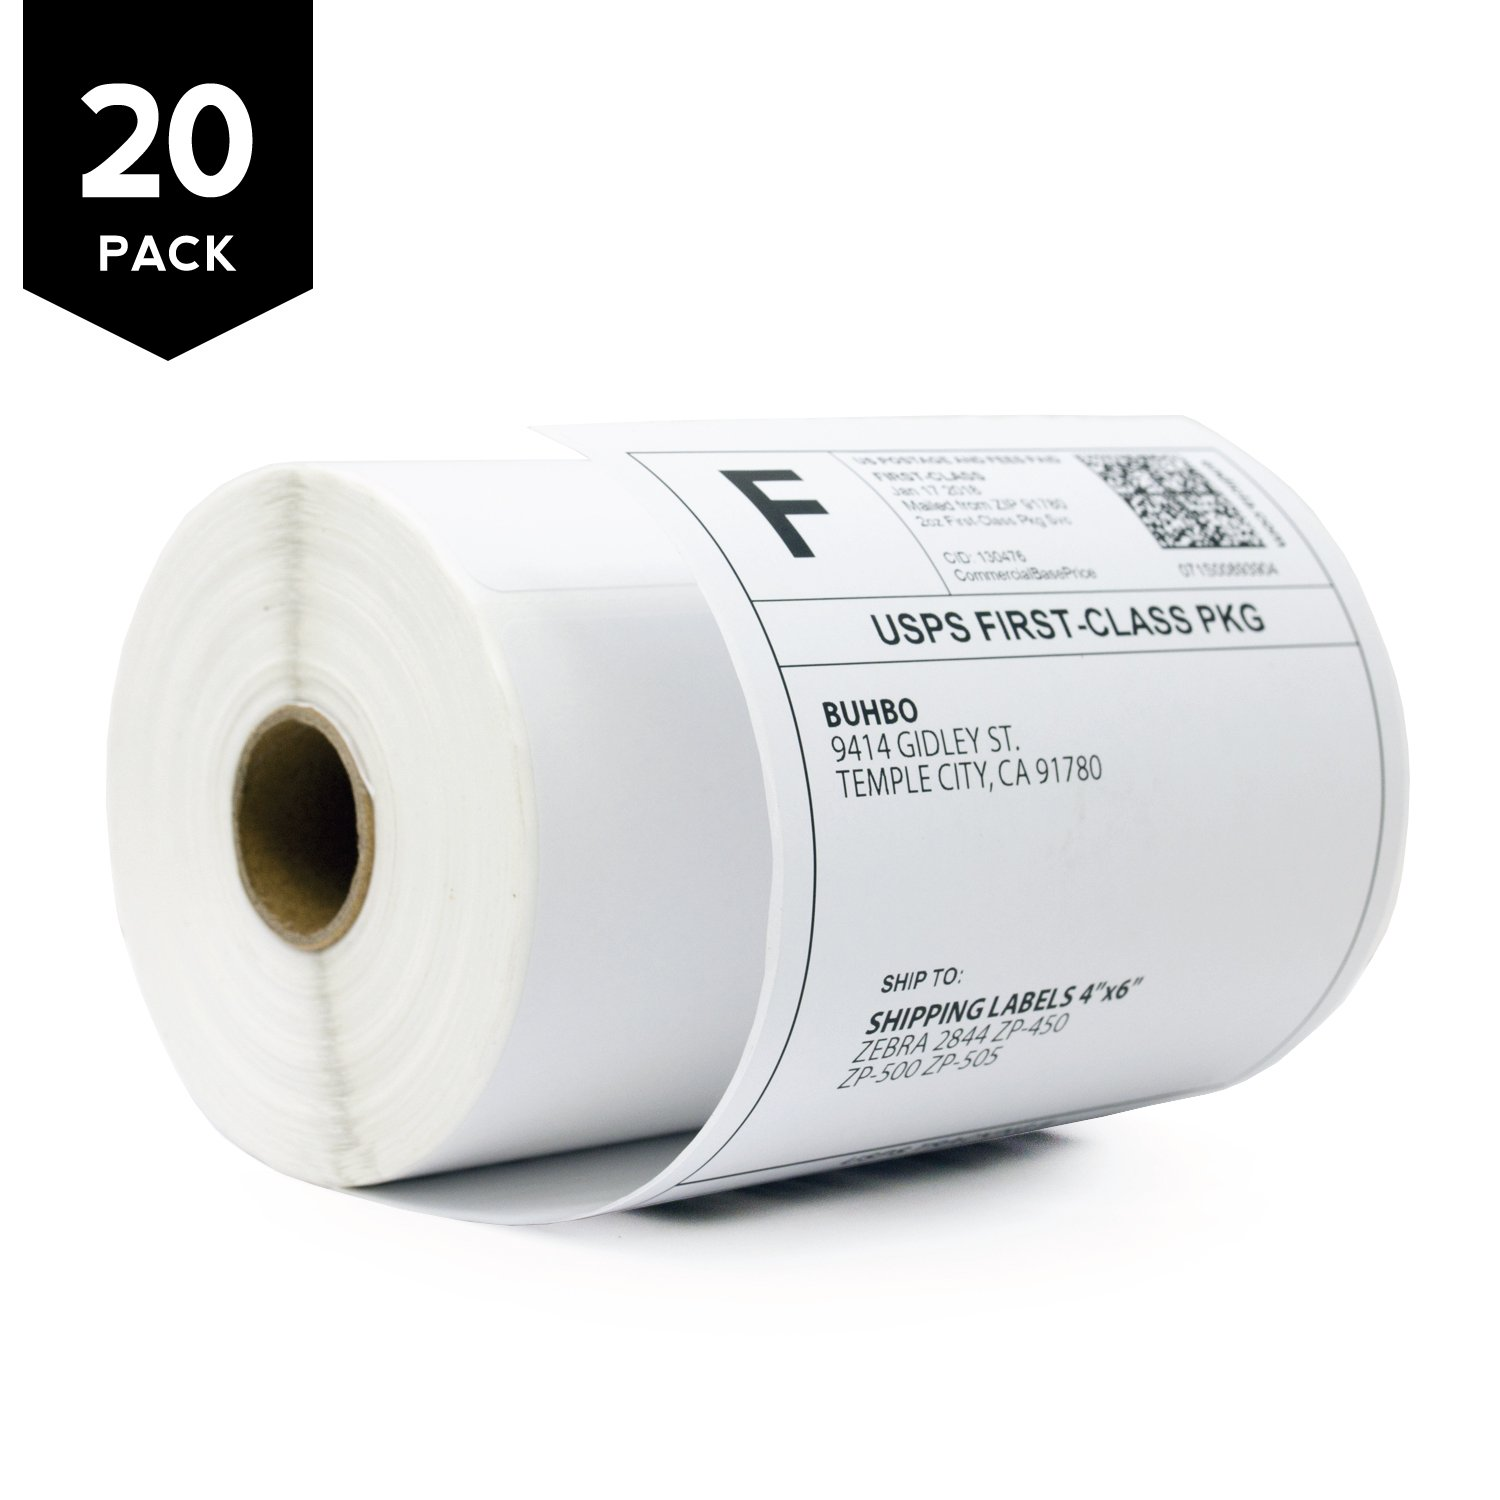 Buhbo [20 Pack] 4''x 6'' Direct Thermal Shipping Labels for Zebra 2844 ZP-450 ZP-500 ZP-505 (250 Labels Per Roll)